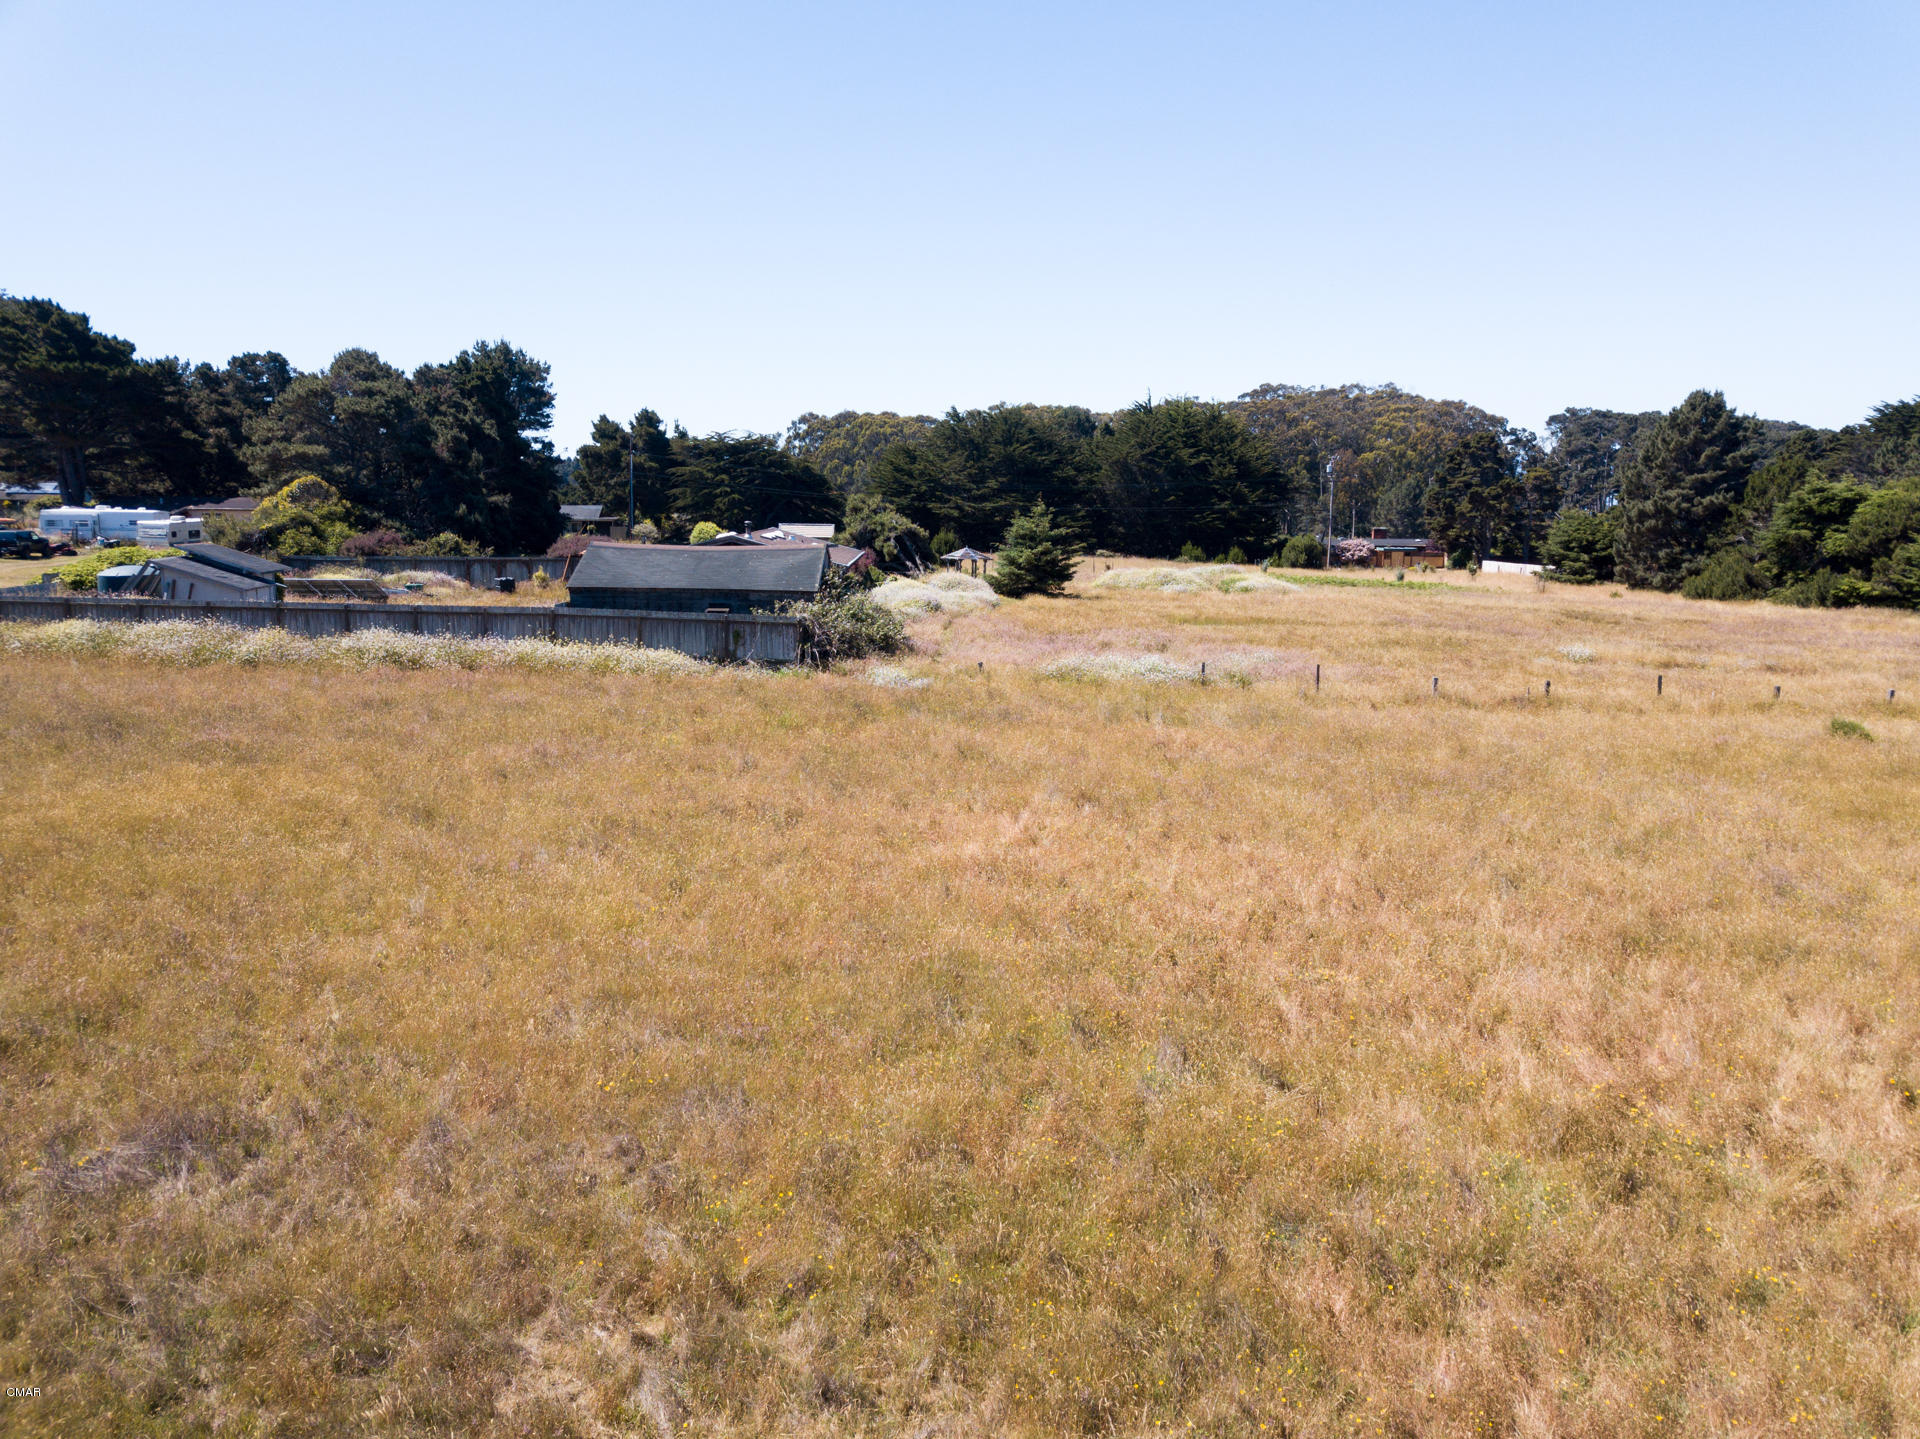 Additional photo for property listing at 34301 Sunset Way 34301 Sunset Way Fort Bragg, California 95437 Estados Unidos